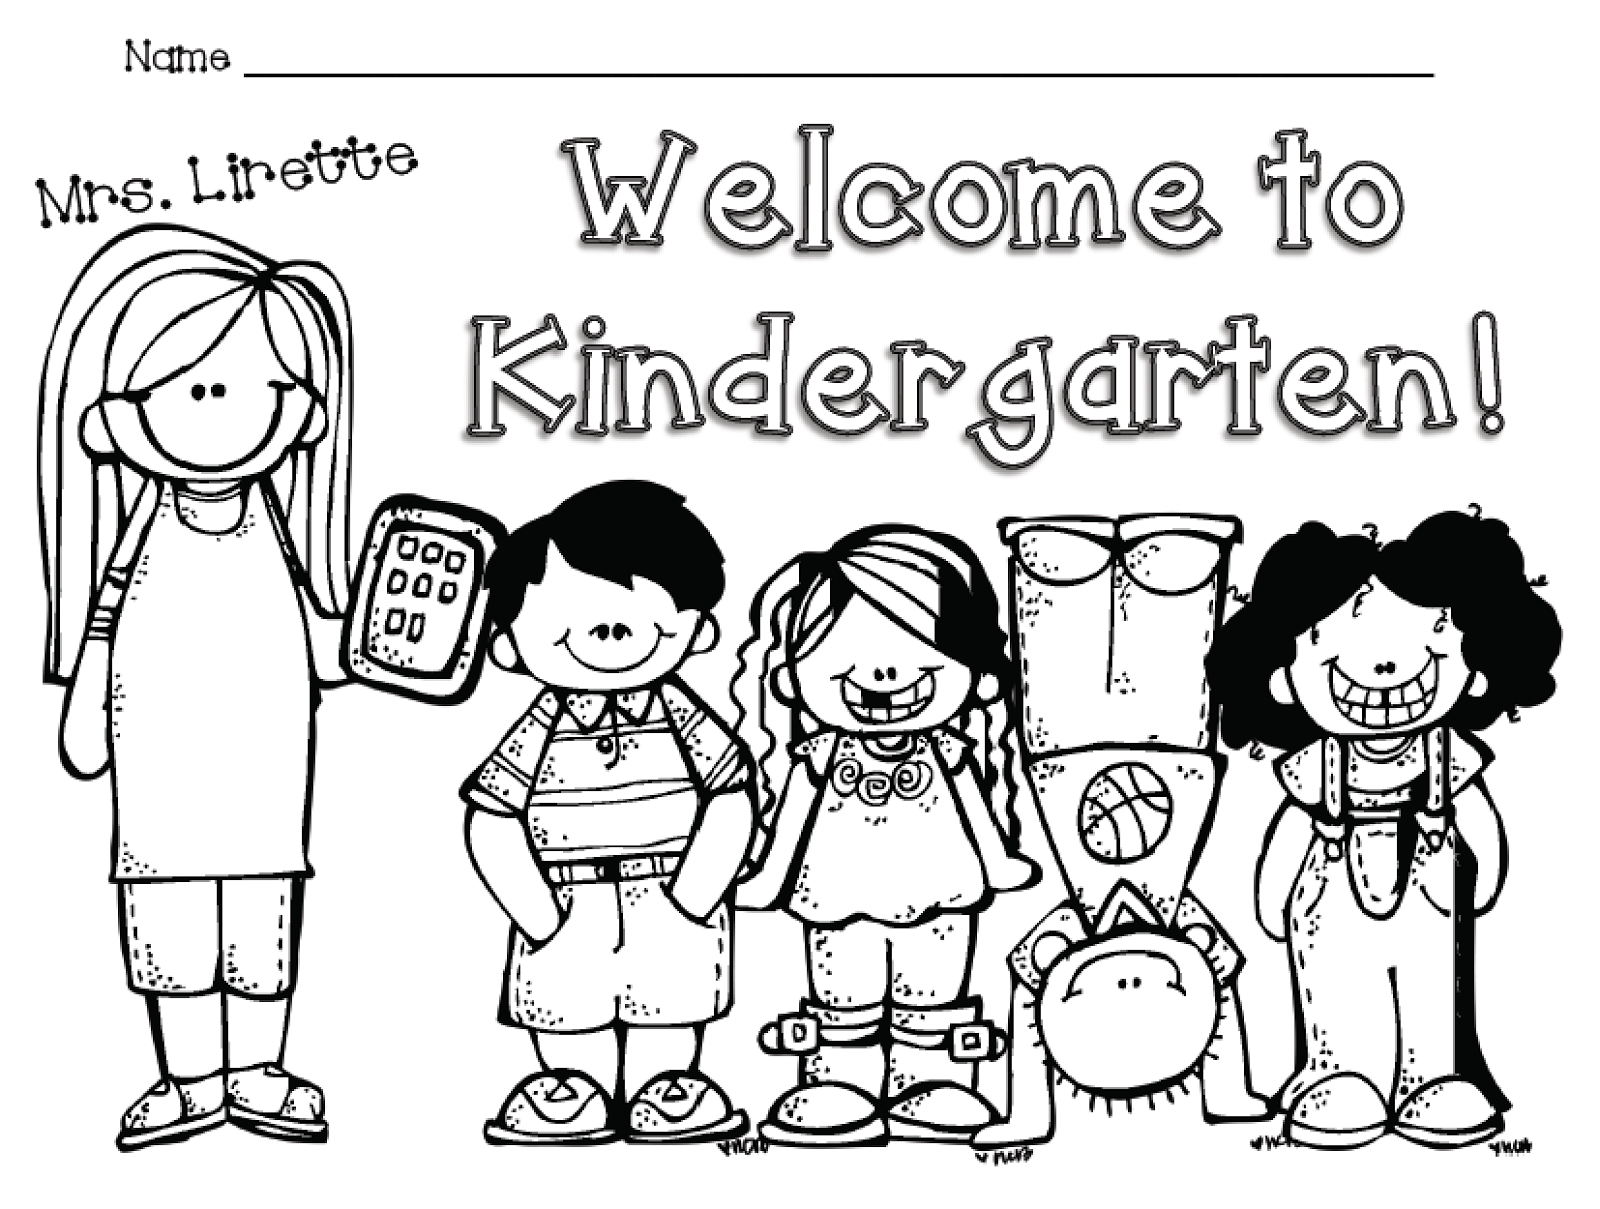 welcome to kindergarten coloring sheet welcome to kindergarten clipart black and white collection coloring kindergarten sheet to welcome